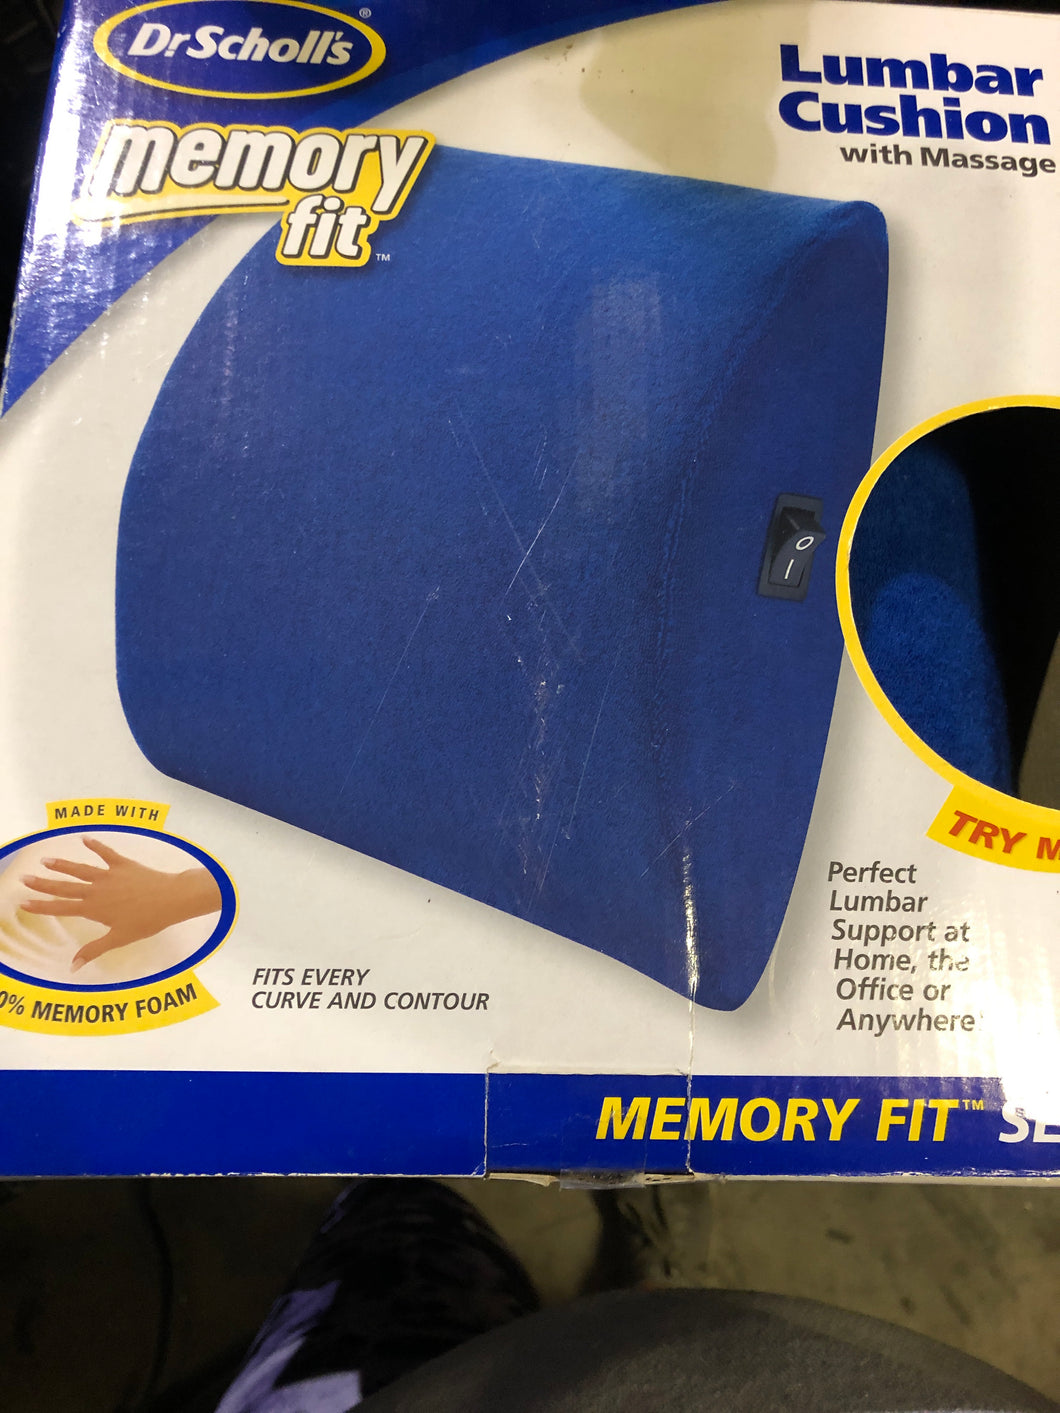 DR Scholls Memory Fit Lumbar Cushion with massage